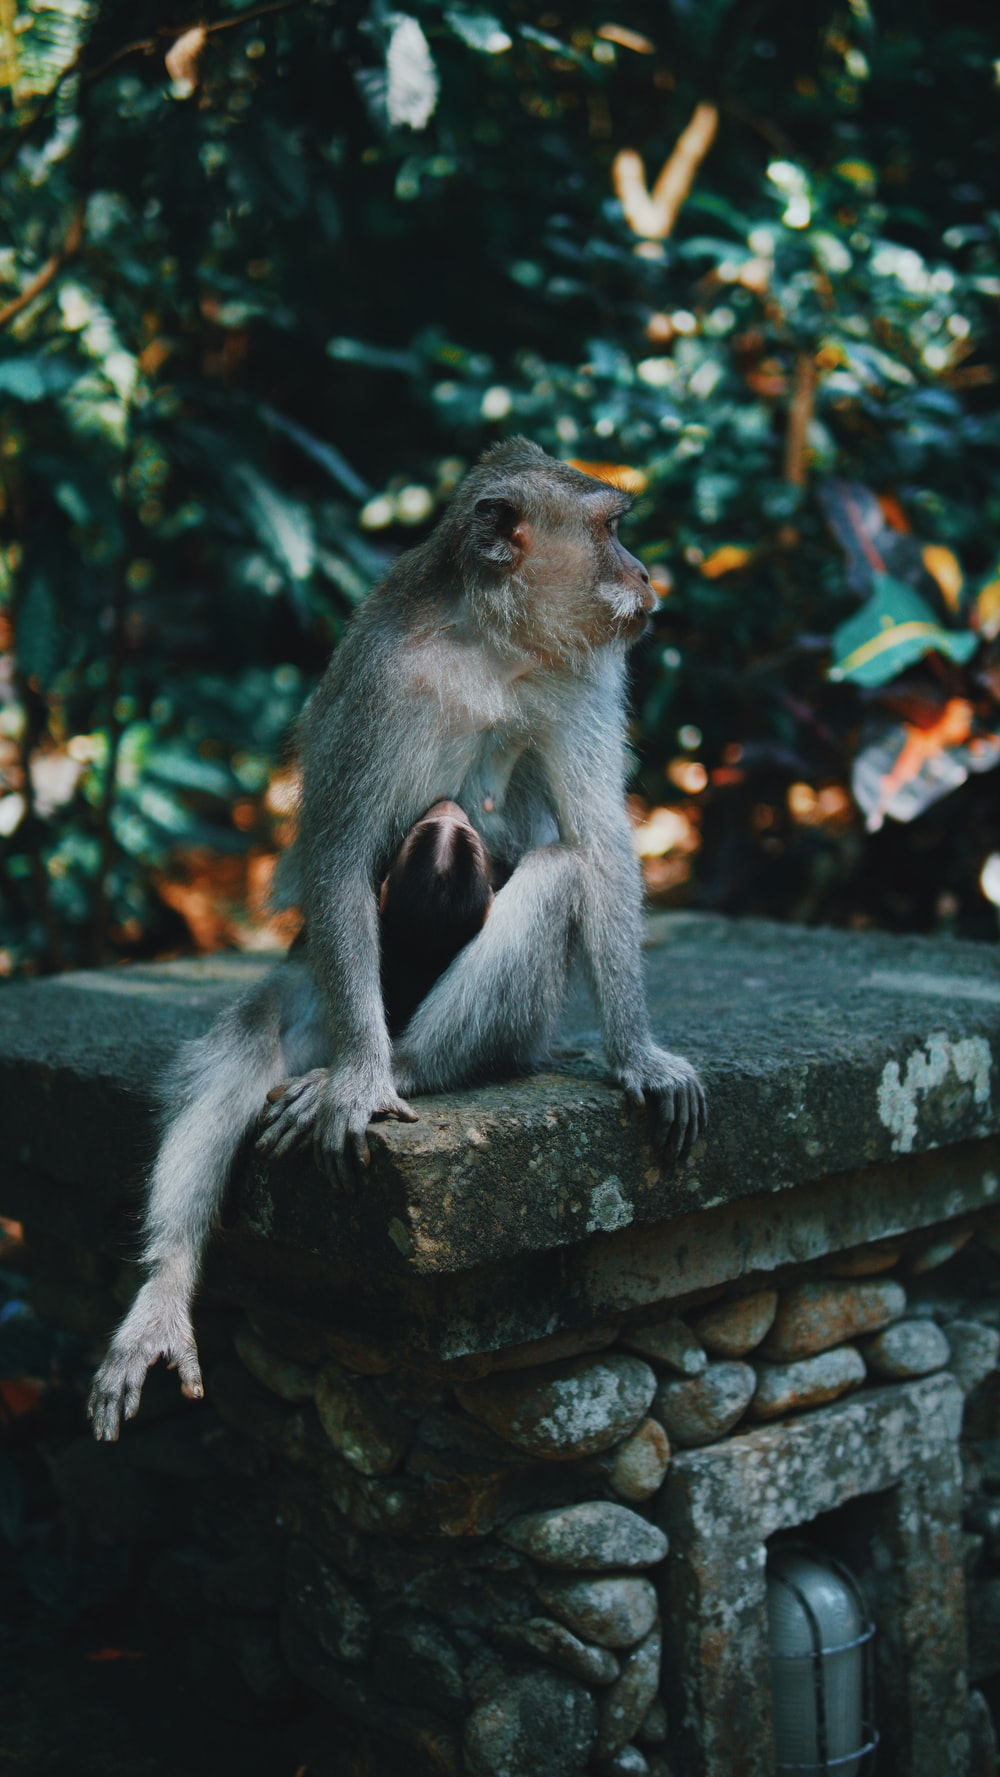 brown monkey sitting on pillar